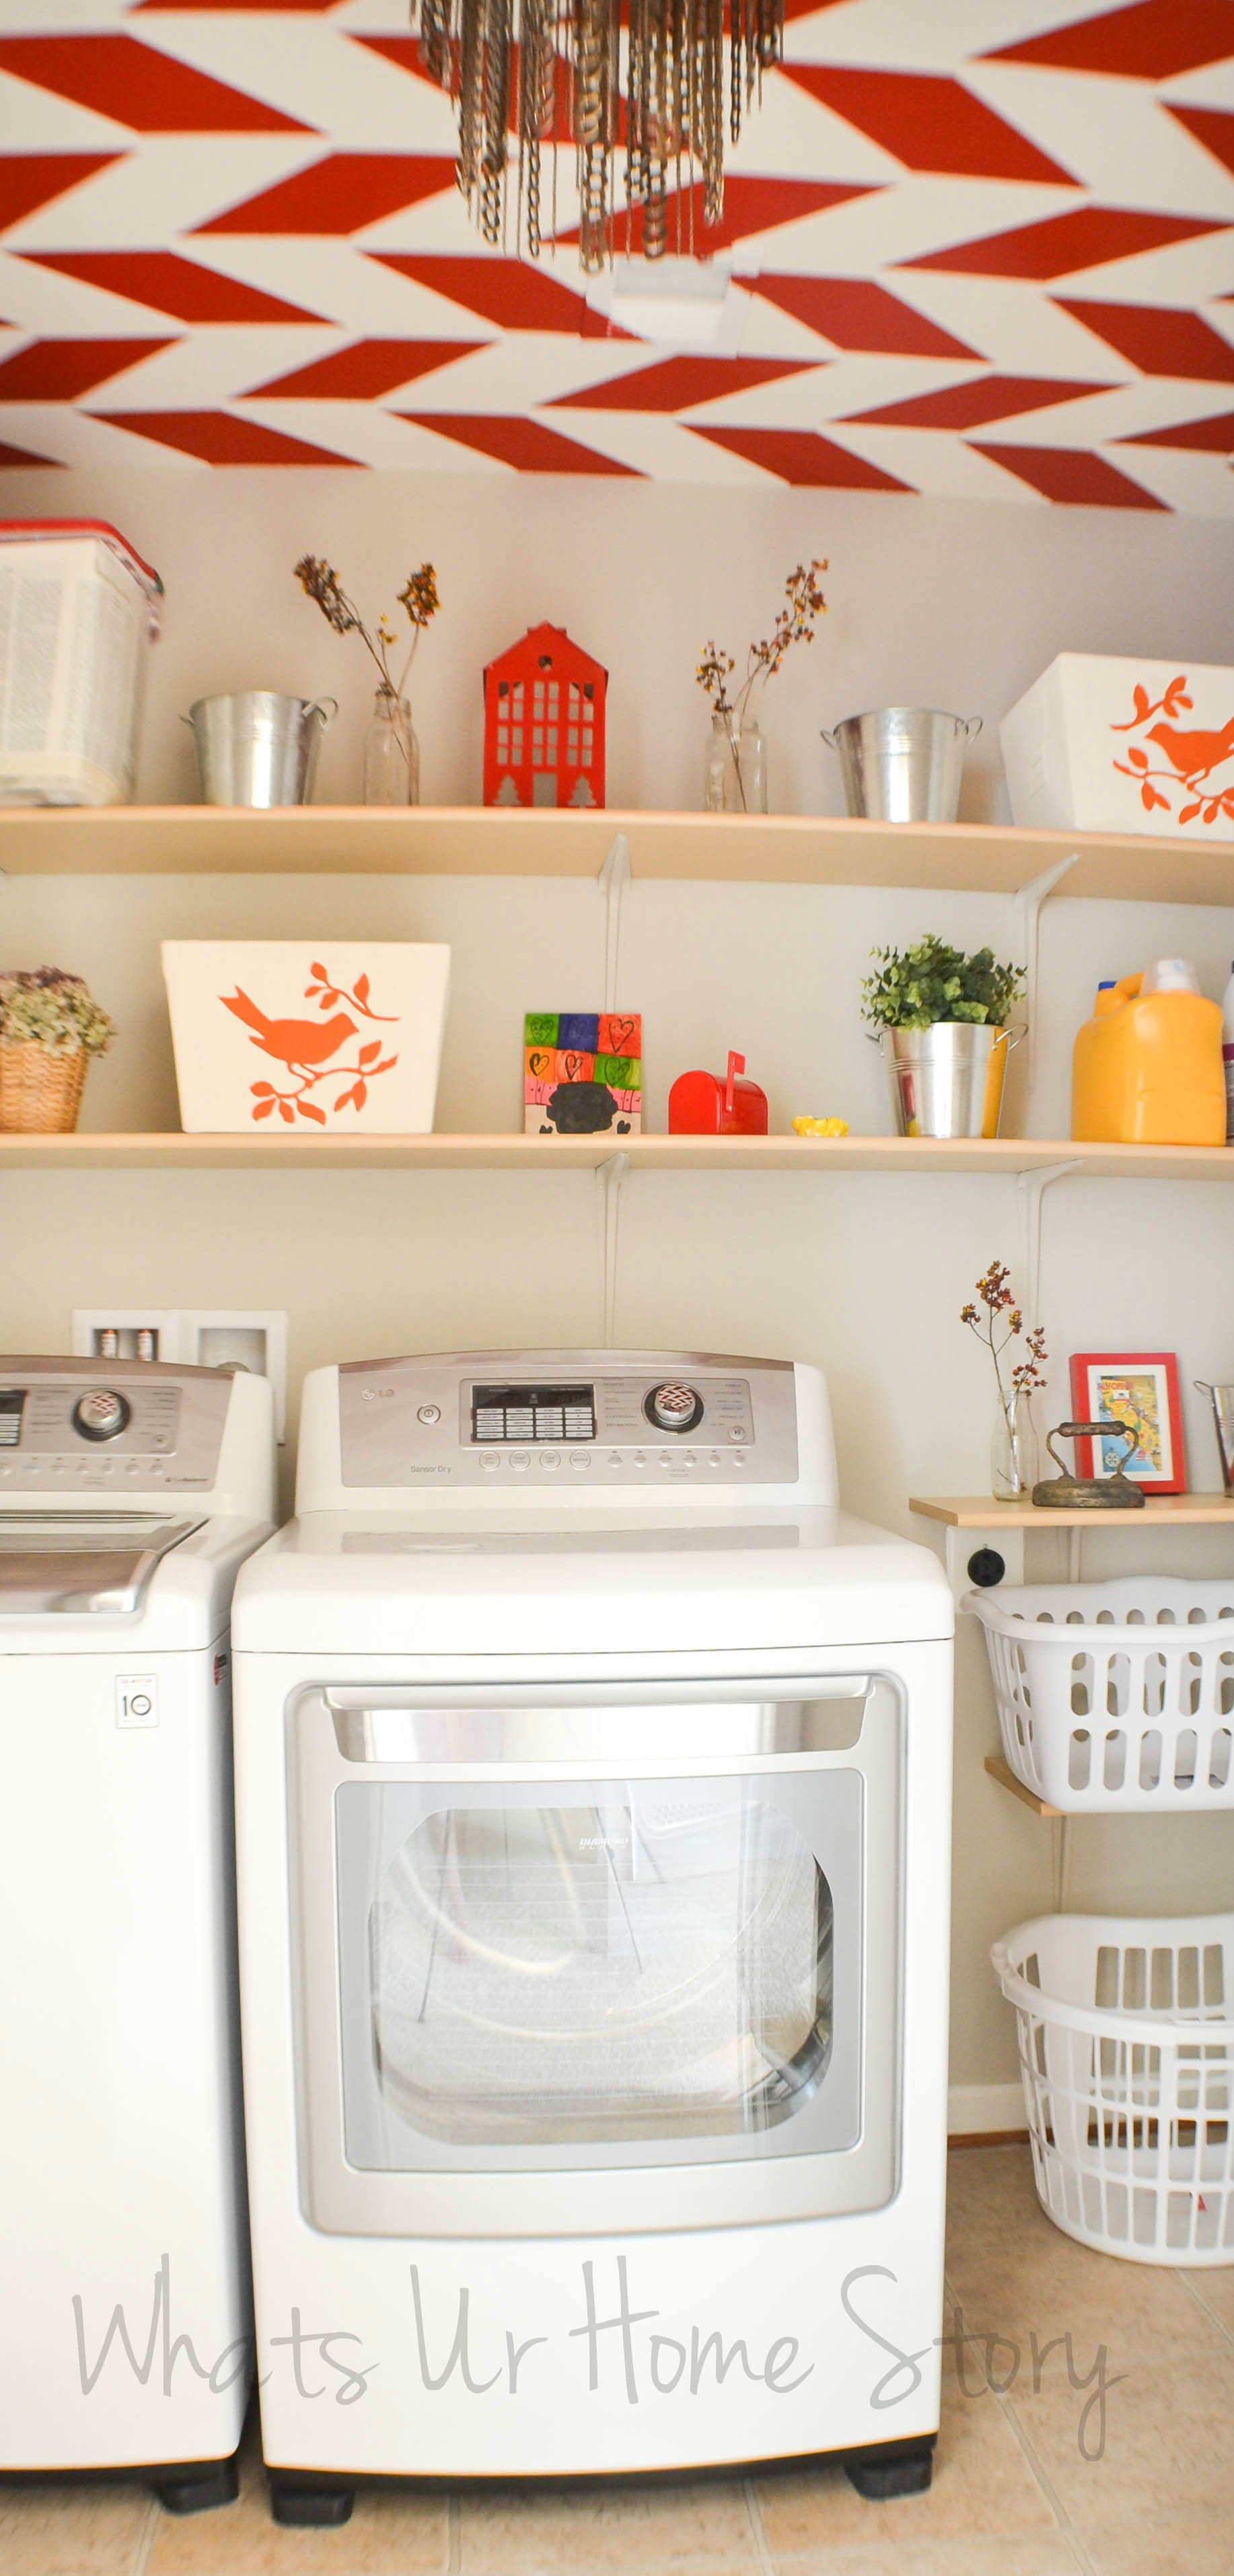 Best ideas about Diy Laundry Room . Save or Pin Simple DIY Wall Shelves for the Laundry Room Now.